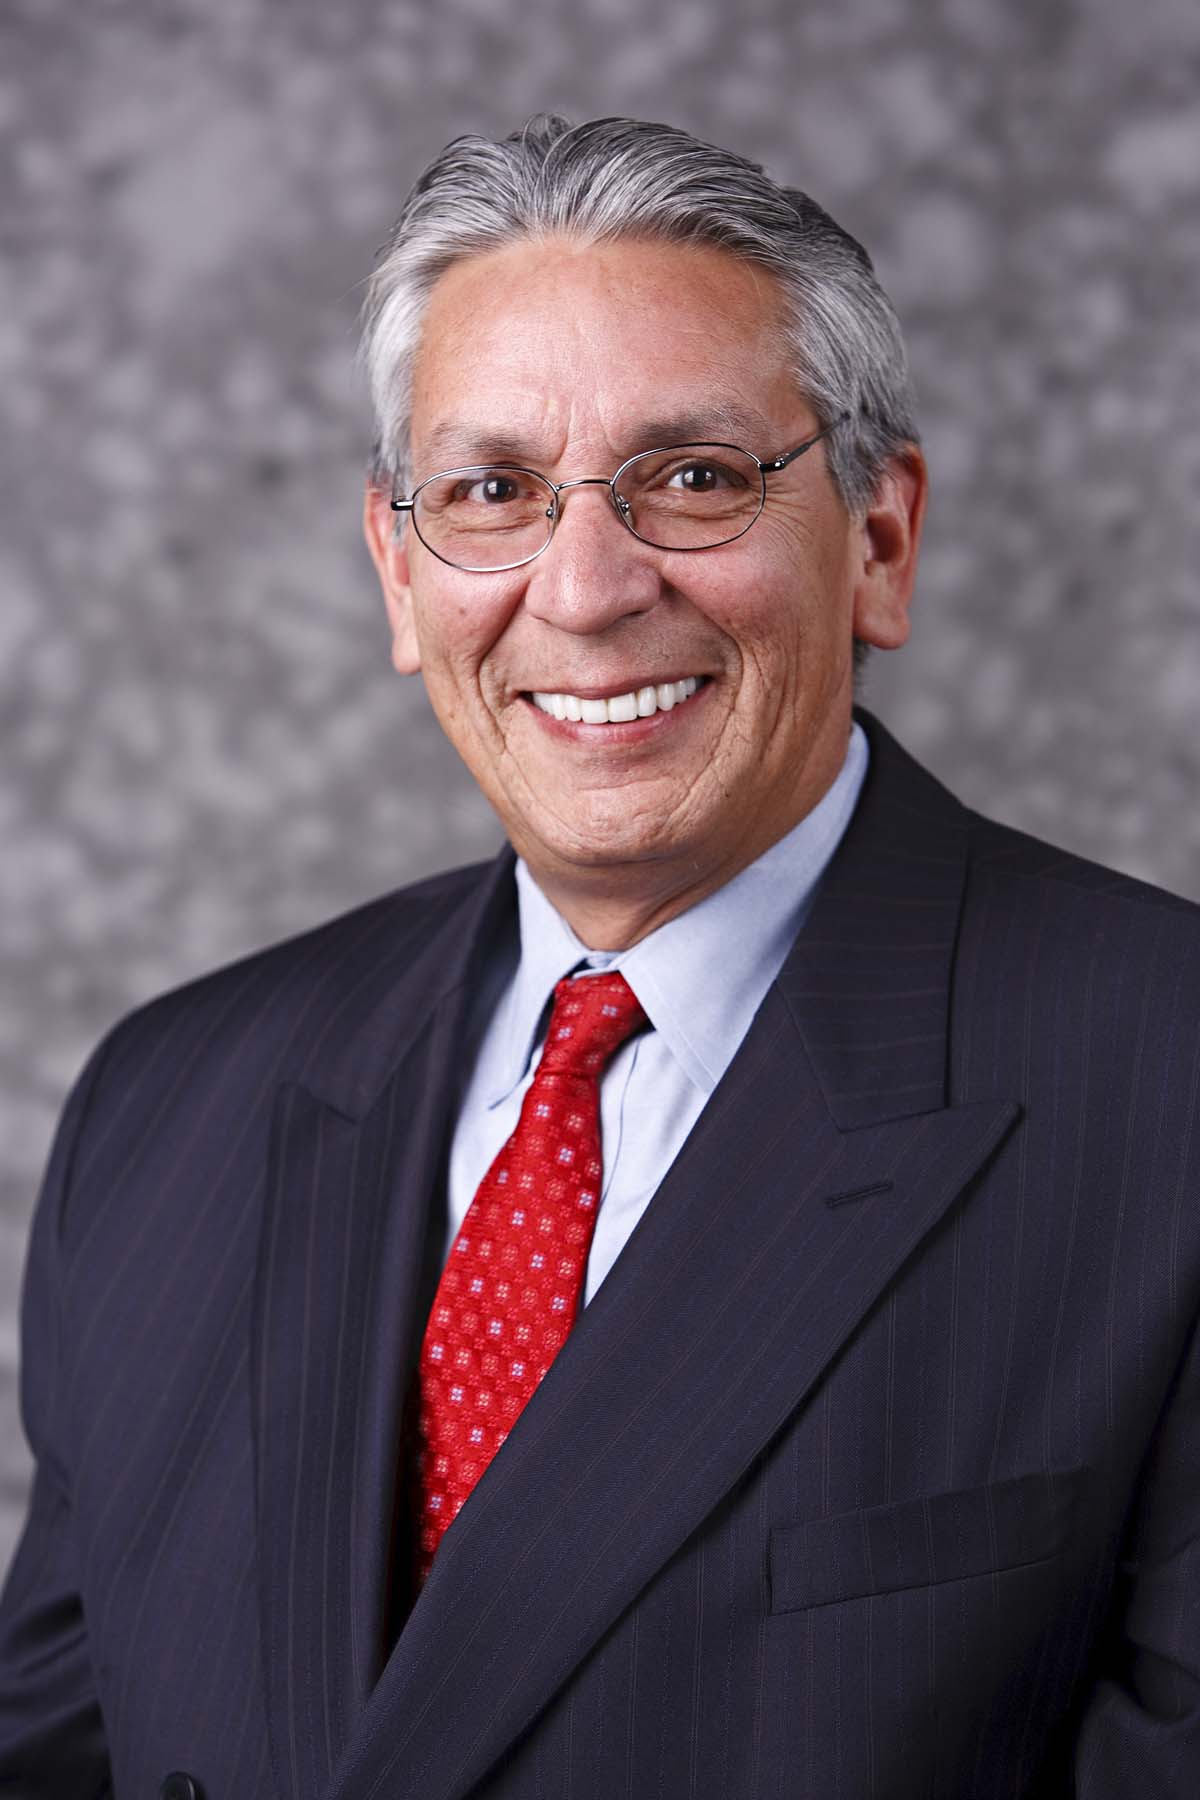 Kevin Gover photo by Ken Rahaim, Smithsonian Institution